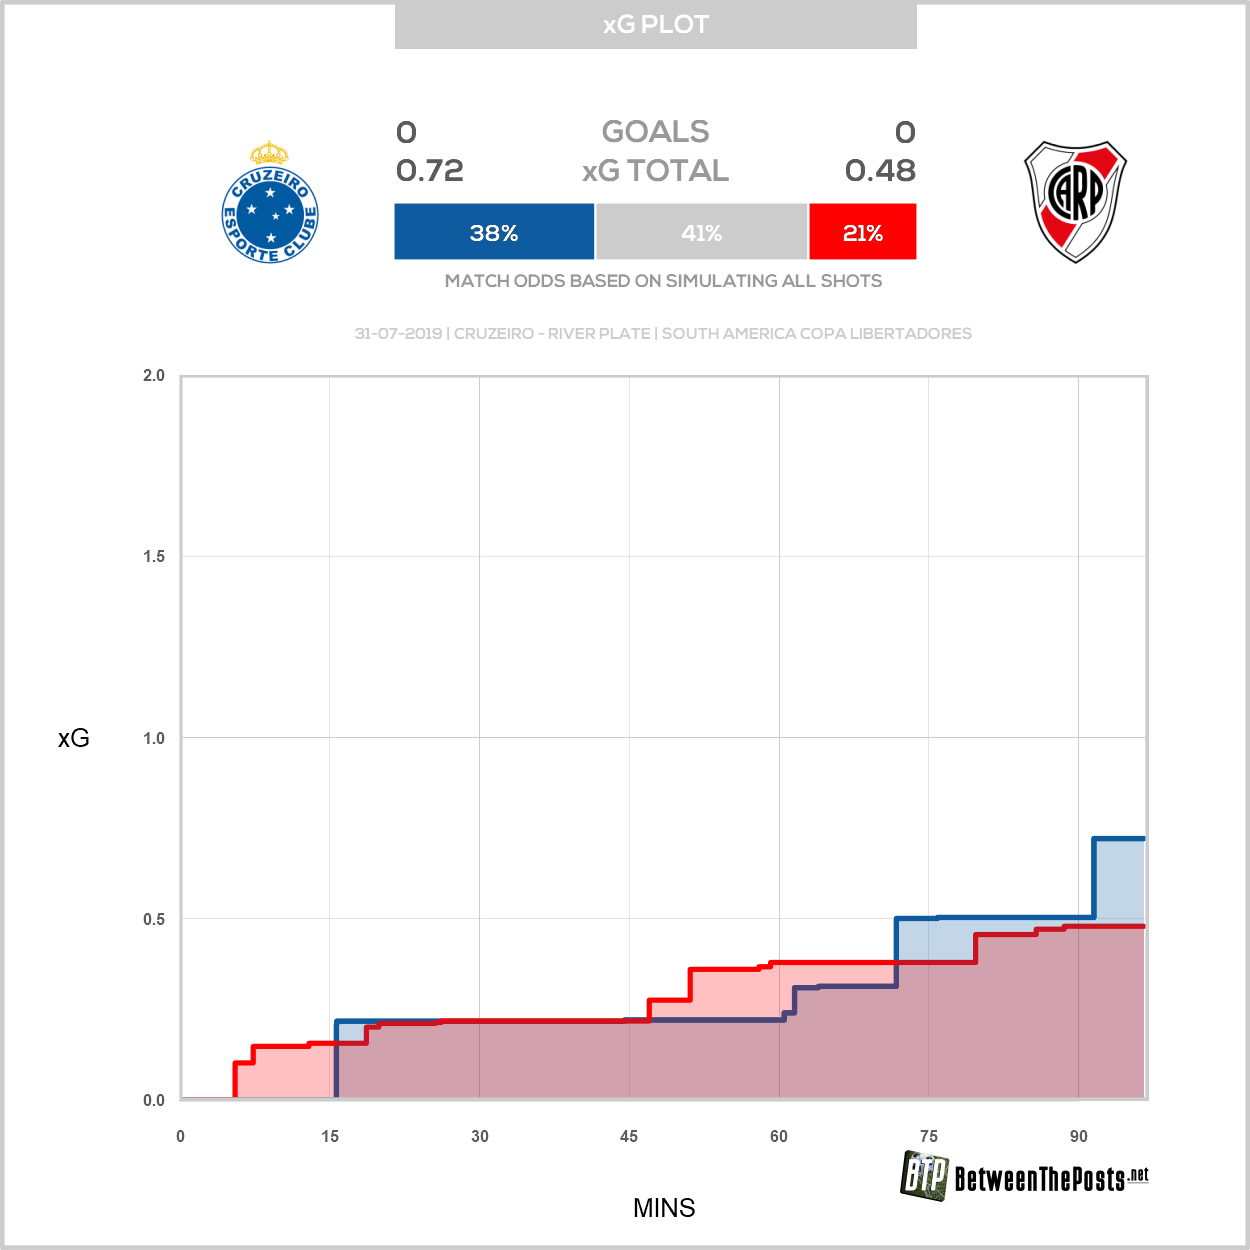 Expected goals plot Cruzeiro - River Plate 0-0 Copa Libertadores